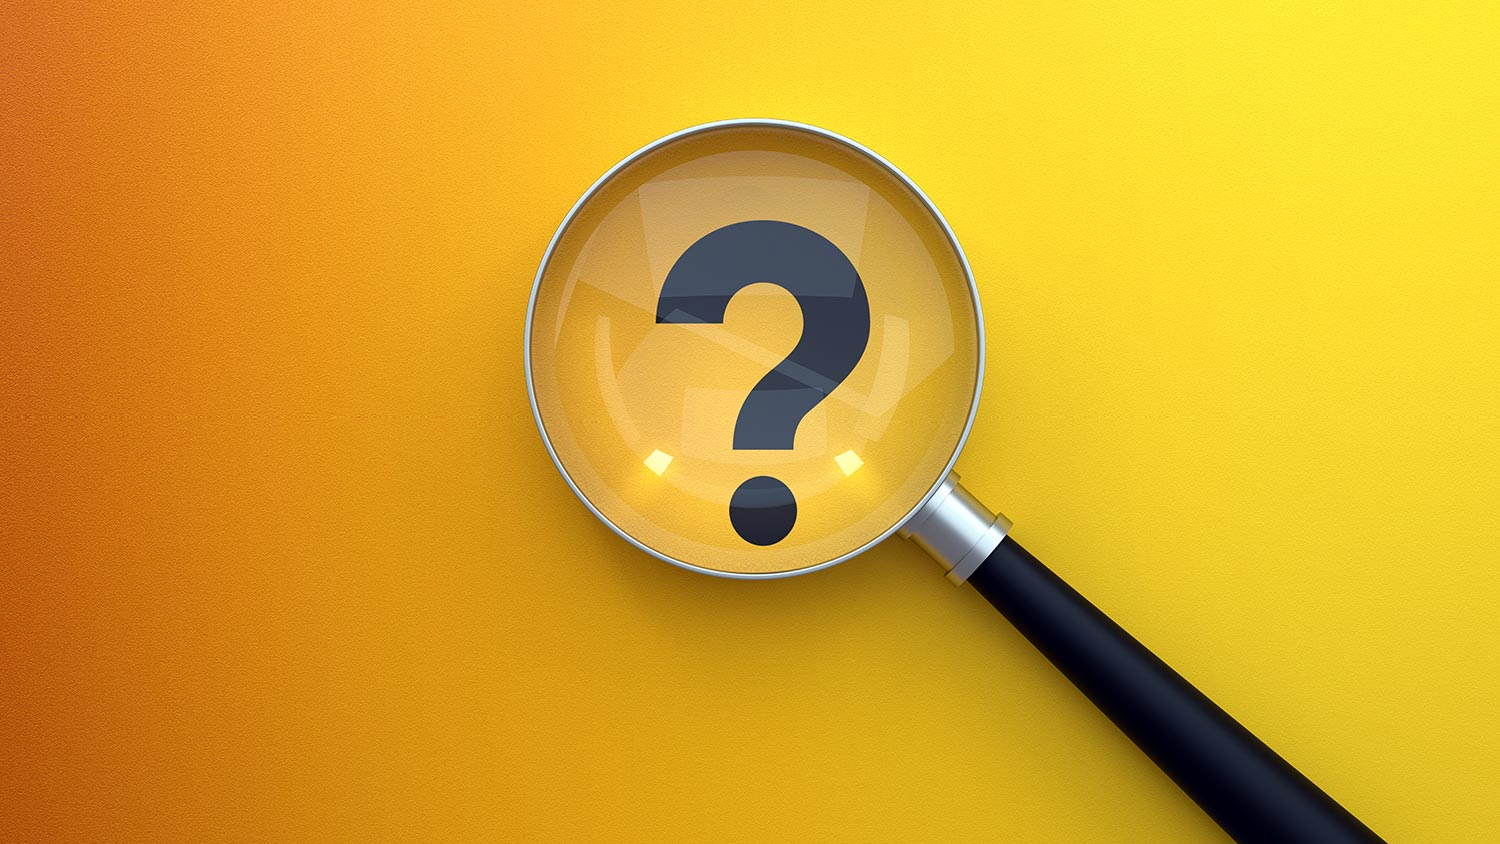 Searching question mark magnifying glass concept